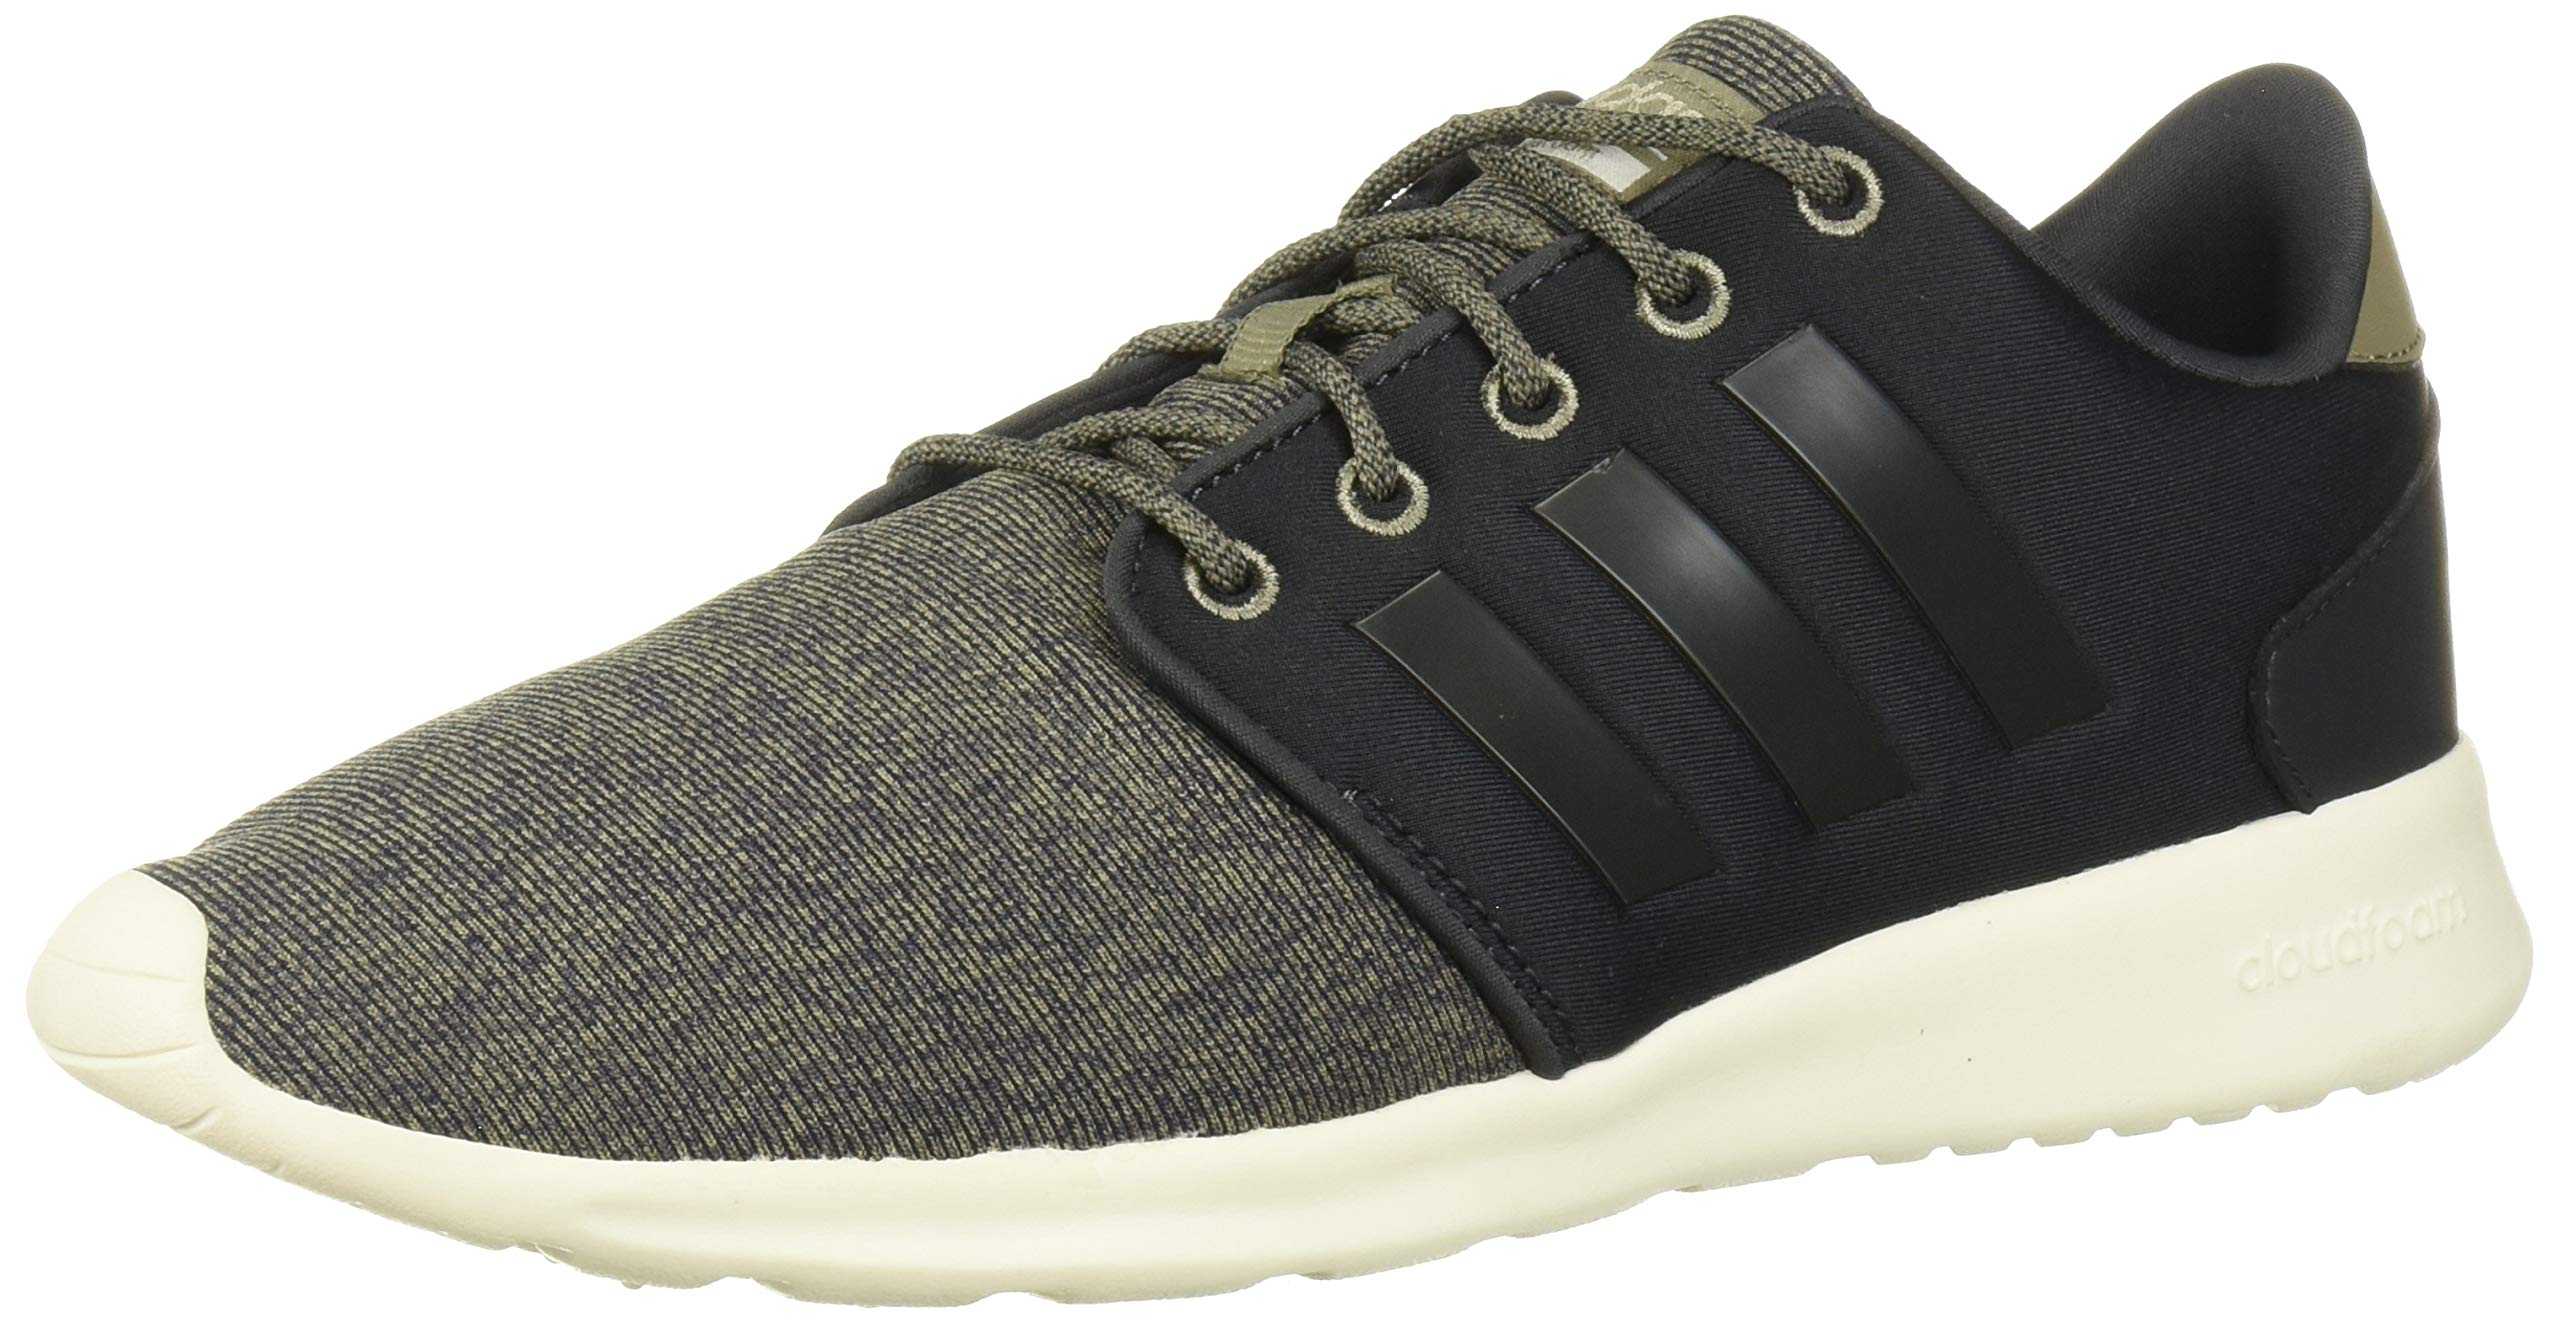 adidas Women's Cloudfoam QT Racer Running Shoe Carbon/Trace Cargo, 7 M US by adidas